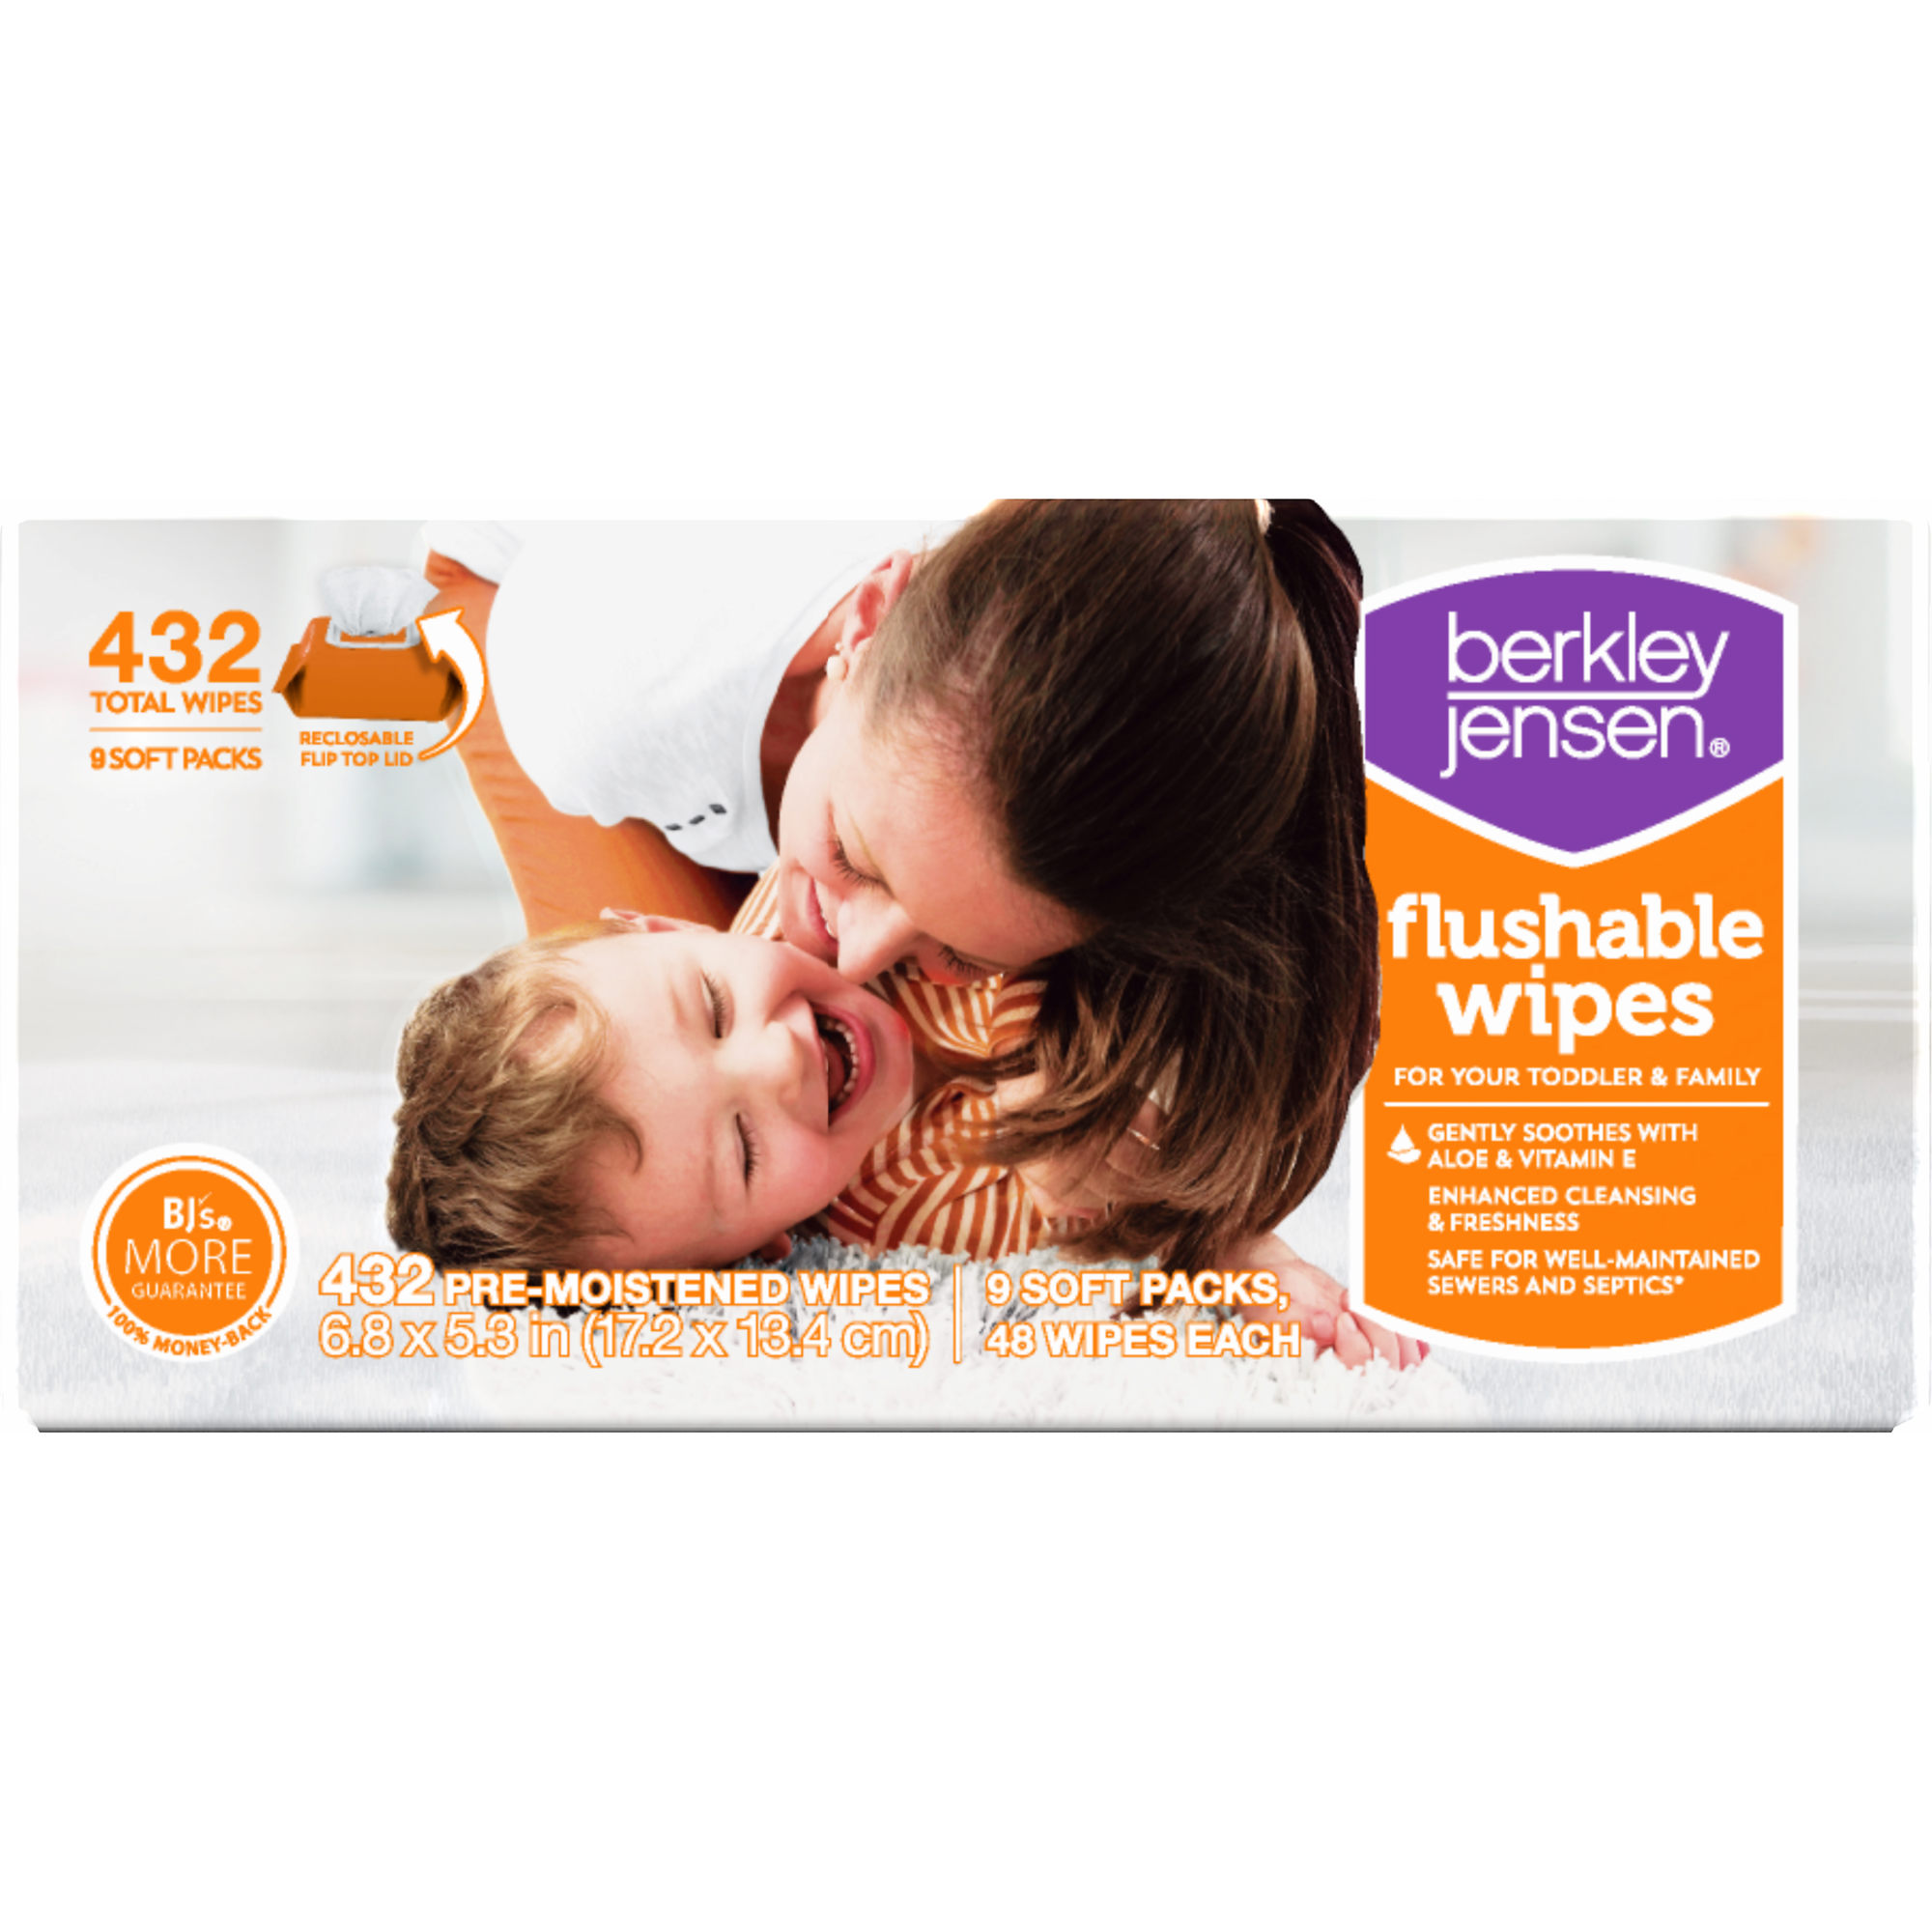 Product of Berkley Jensen Family & Toddler Moist Flushable Wipes, 432 ct. (baby wipes - Wholesale Price - Baby Wipes [Bulk Savings]